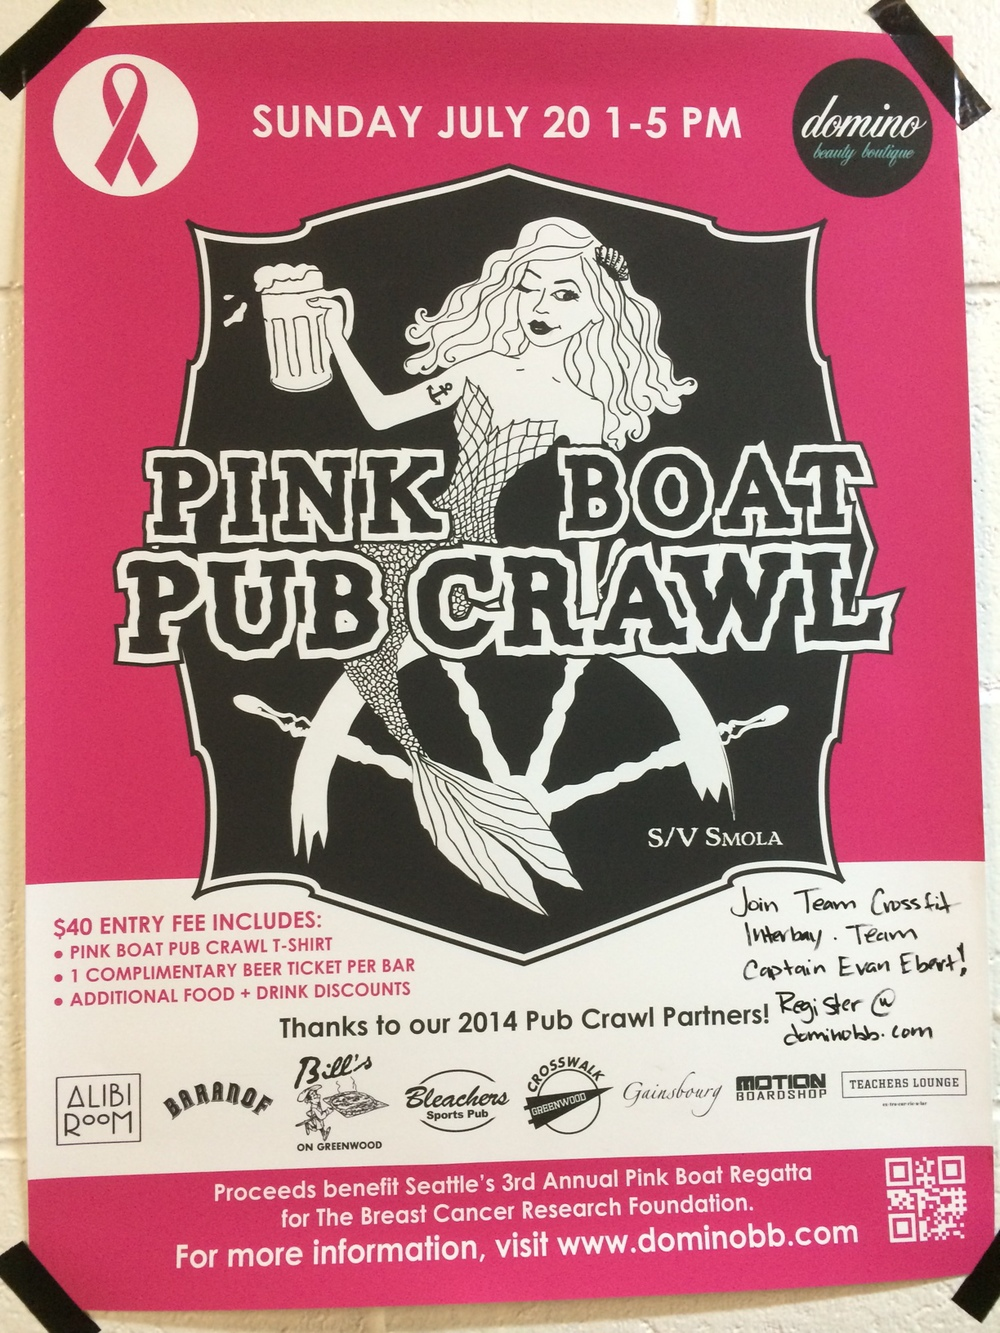 Sunday there is a pub crawl :-)